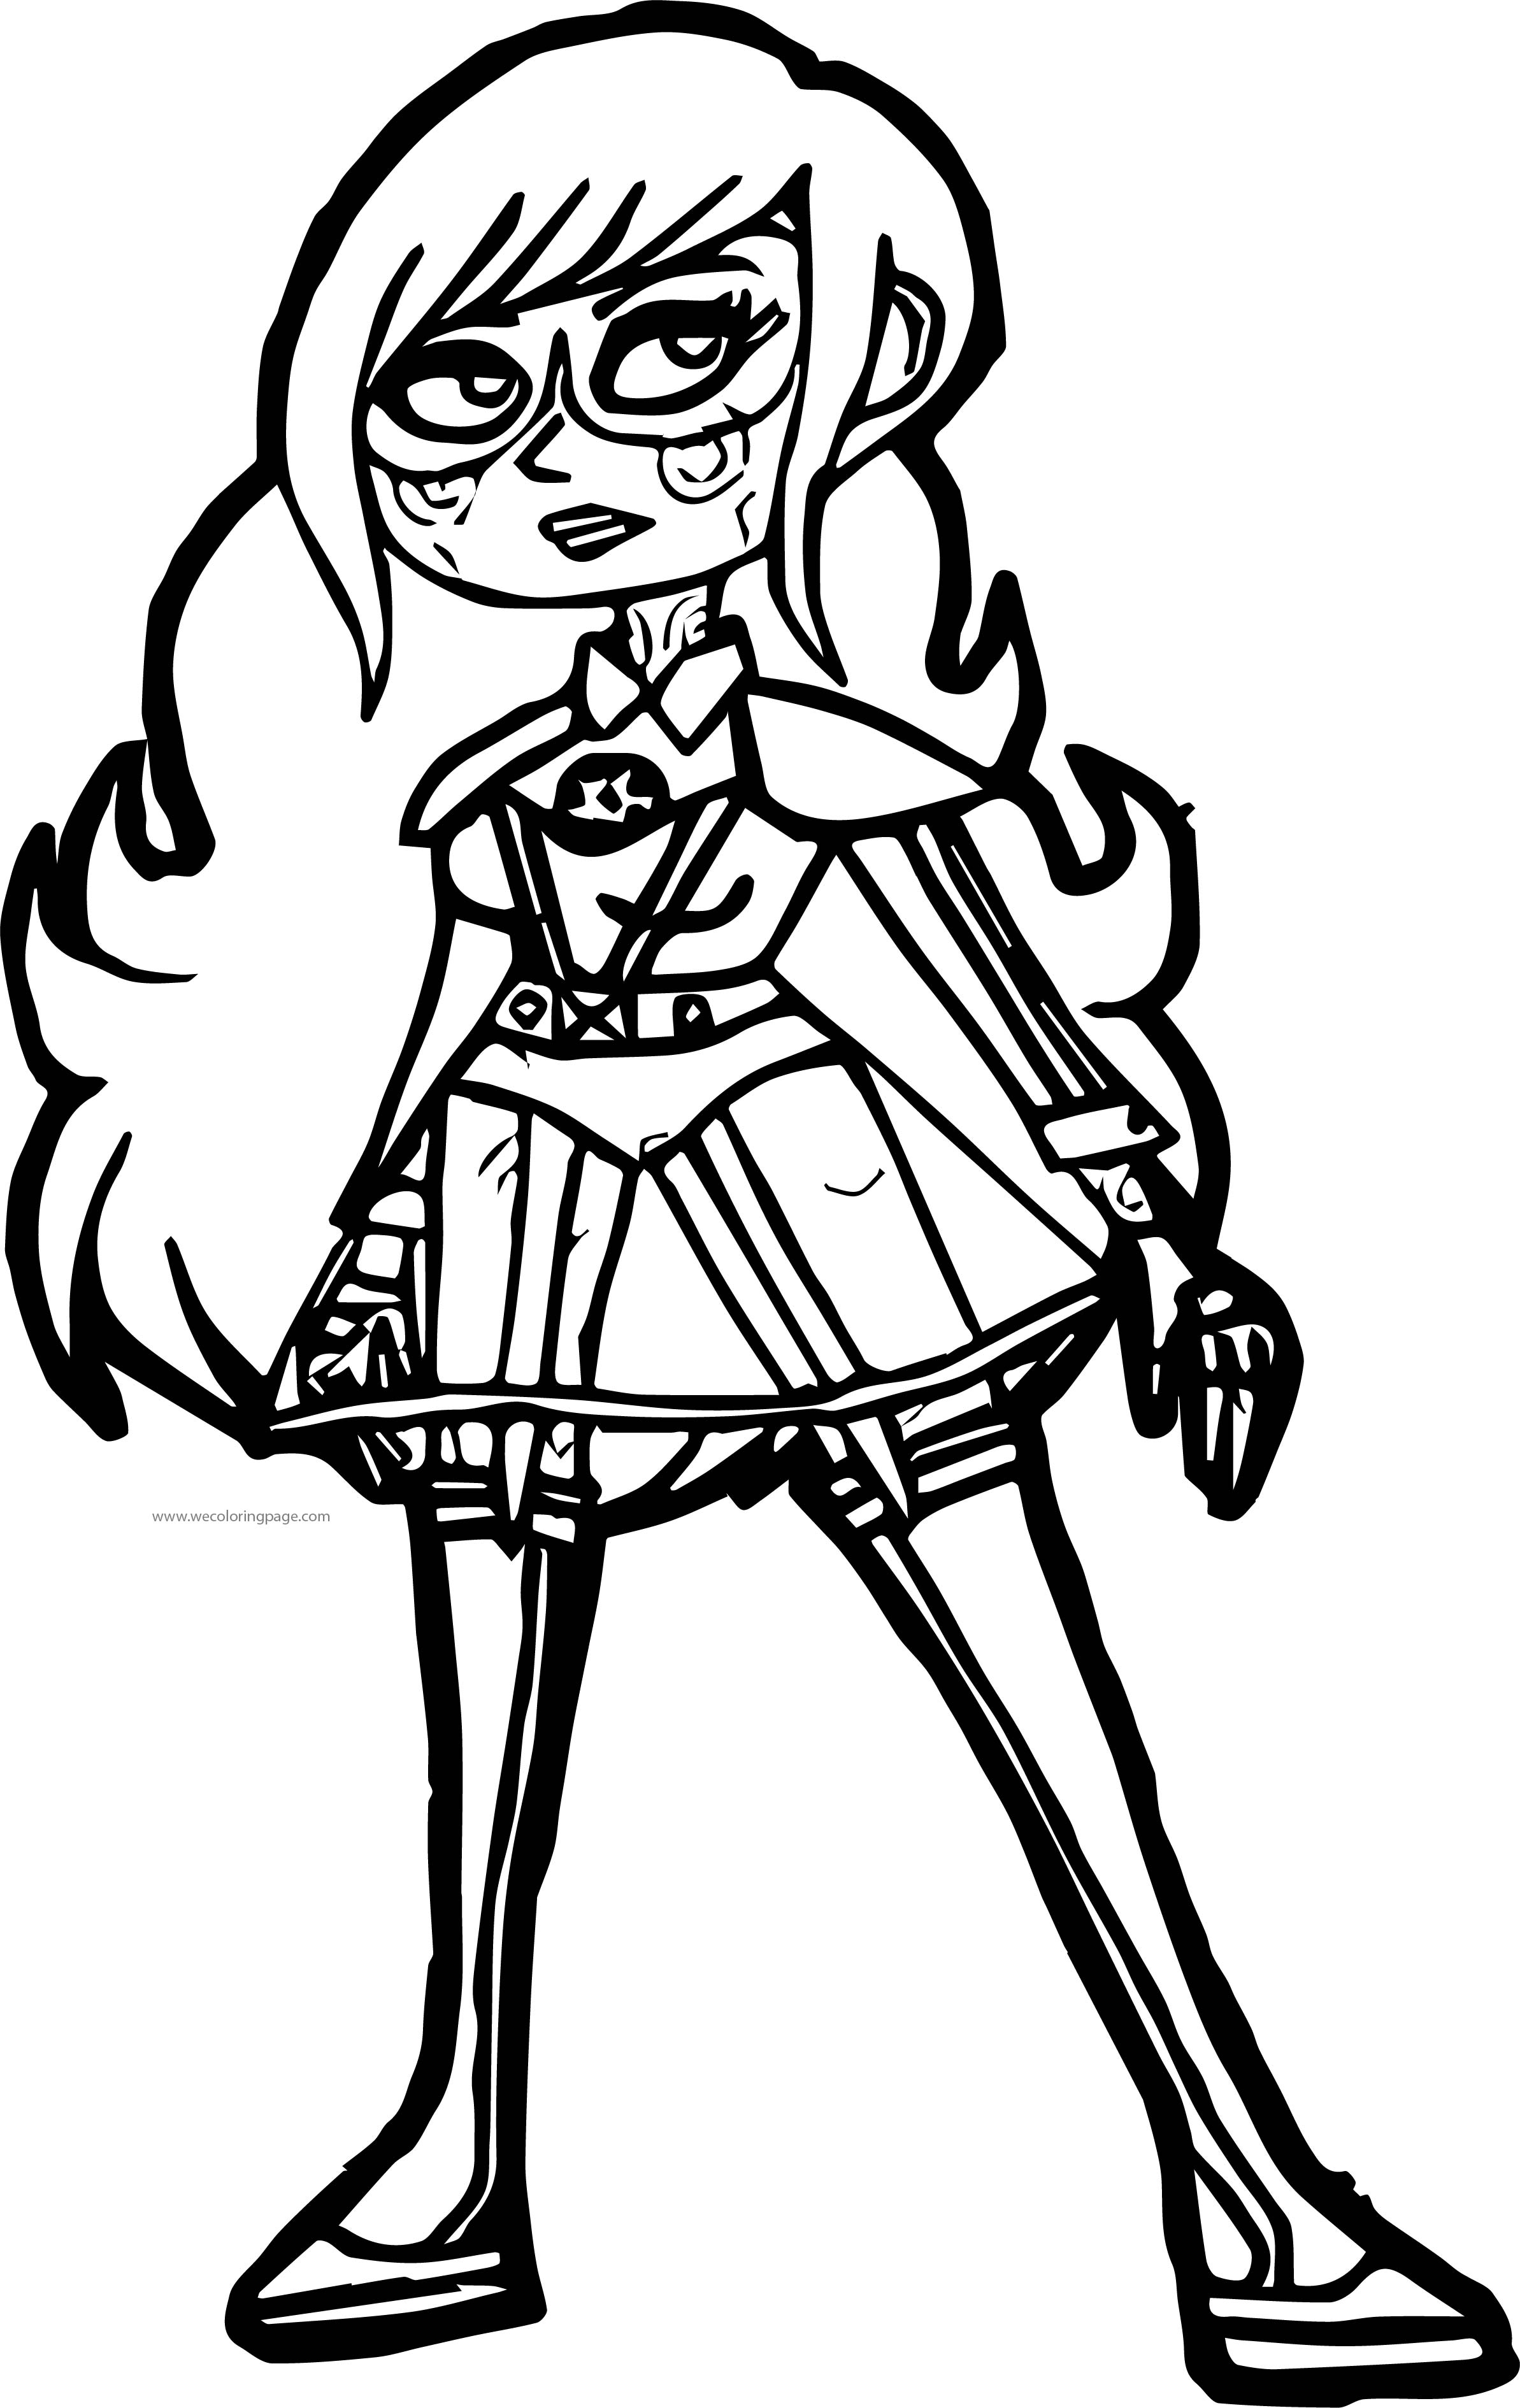 Supernoobs Girl Coloring Page